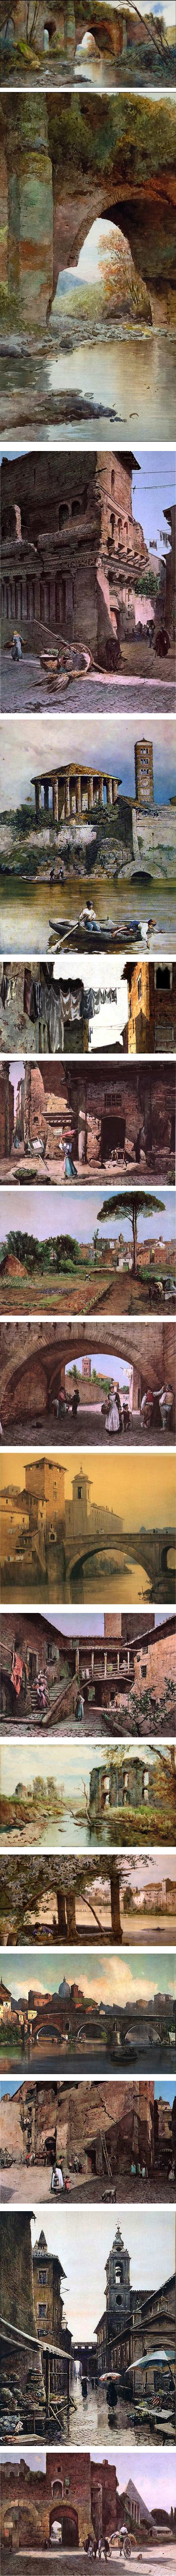 Ettore Roesler Franz, watercolors of Rome